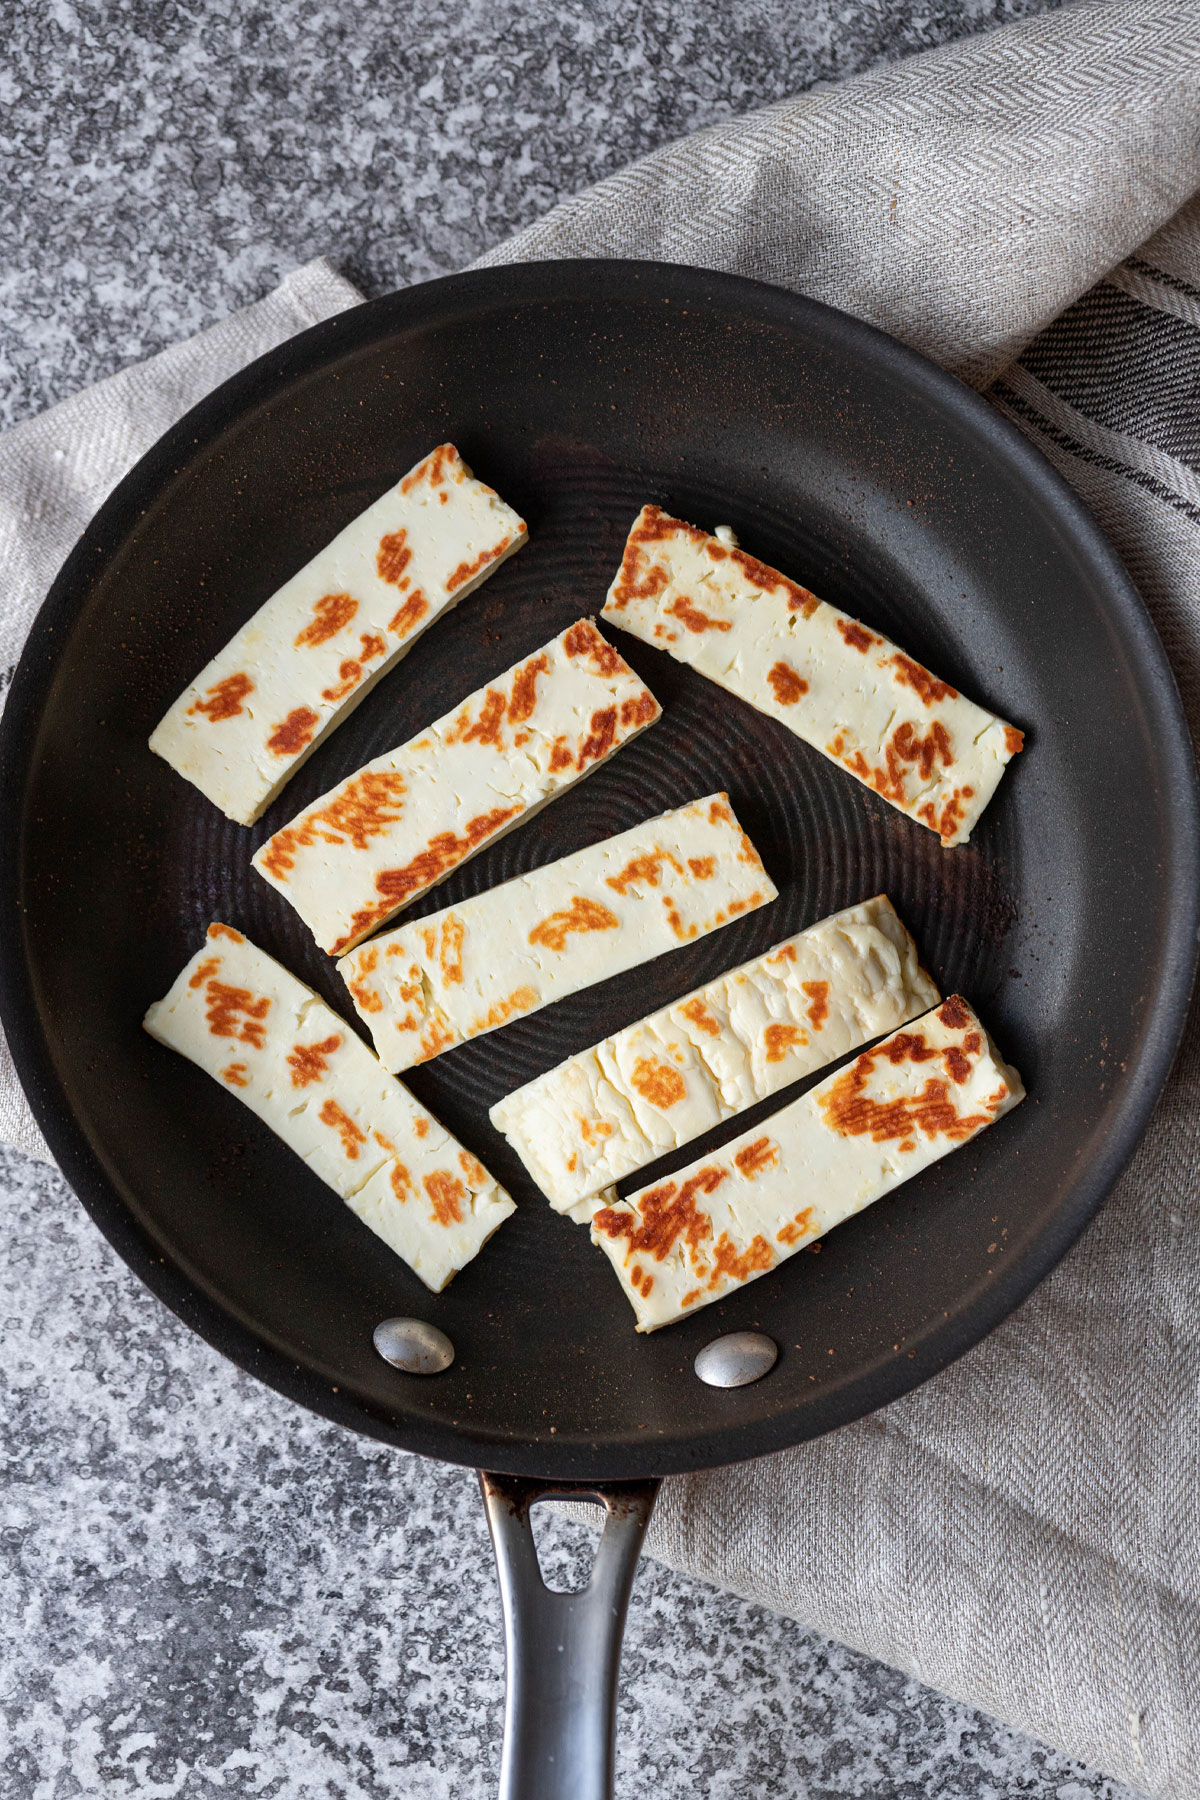 cooked halloumi pieces in a small fry pan